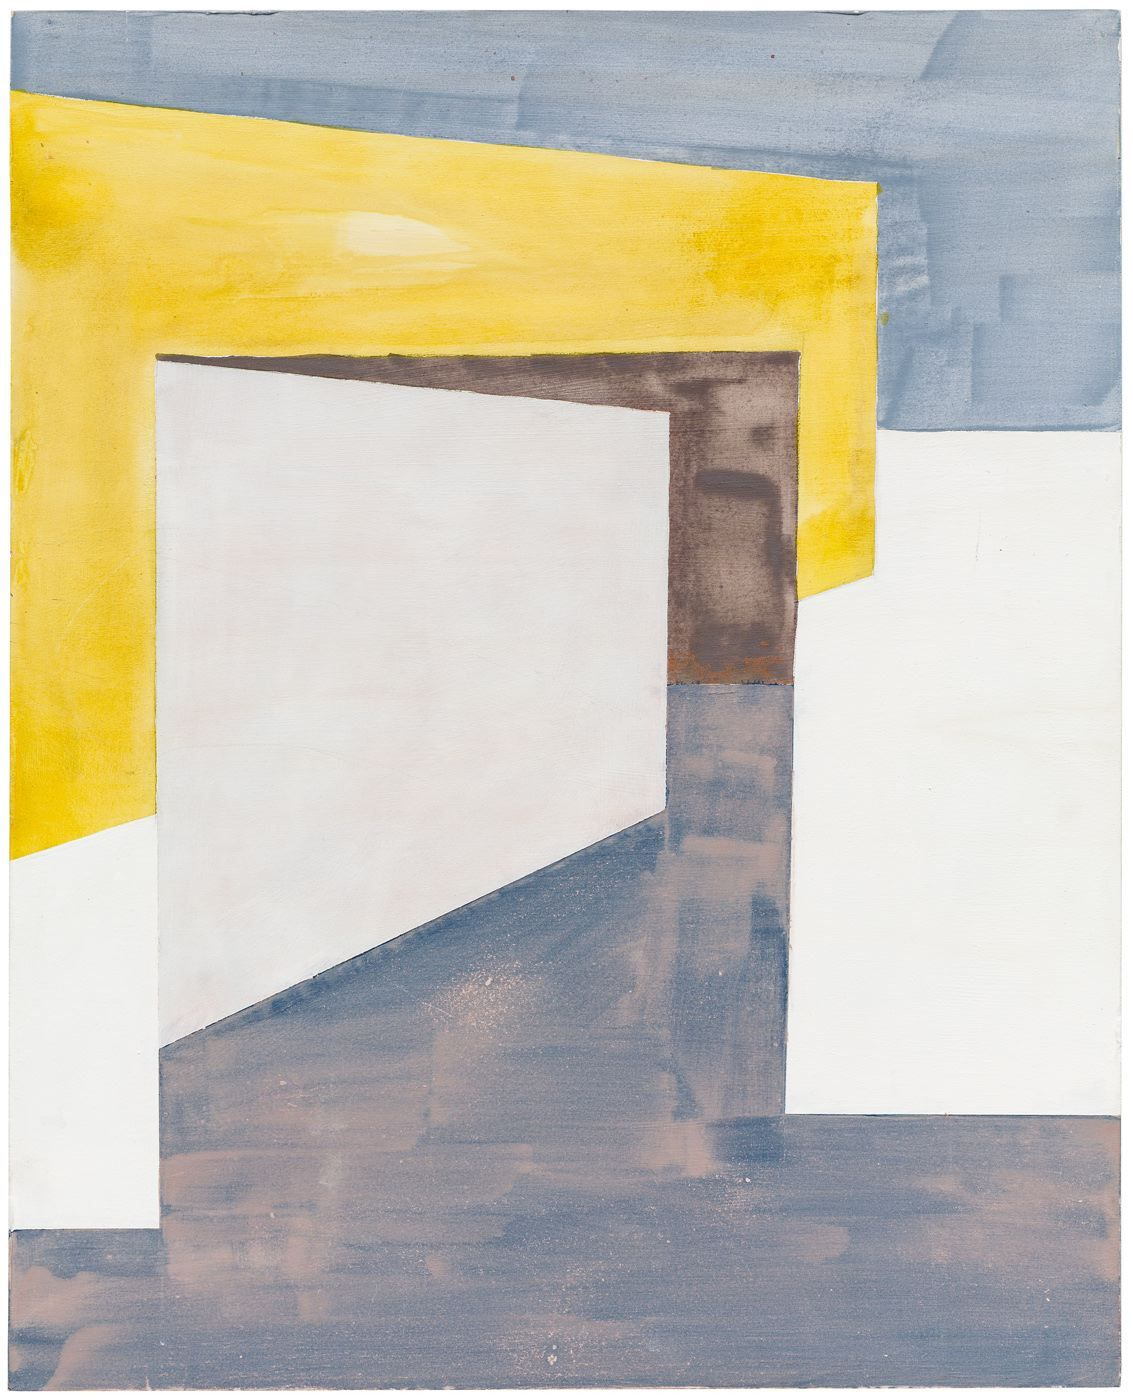 Composition with Yellow Wall